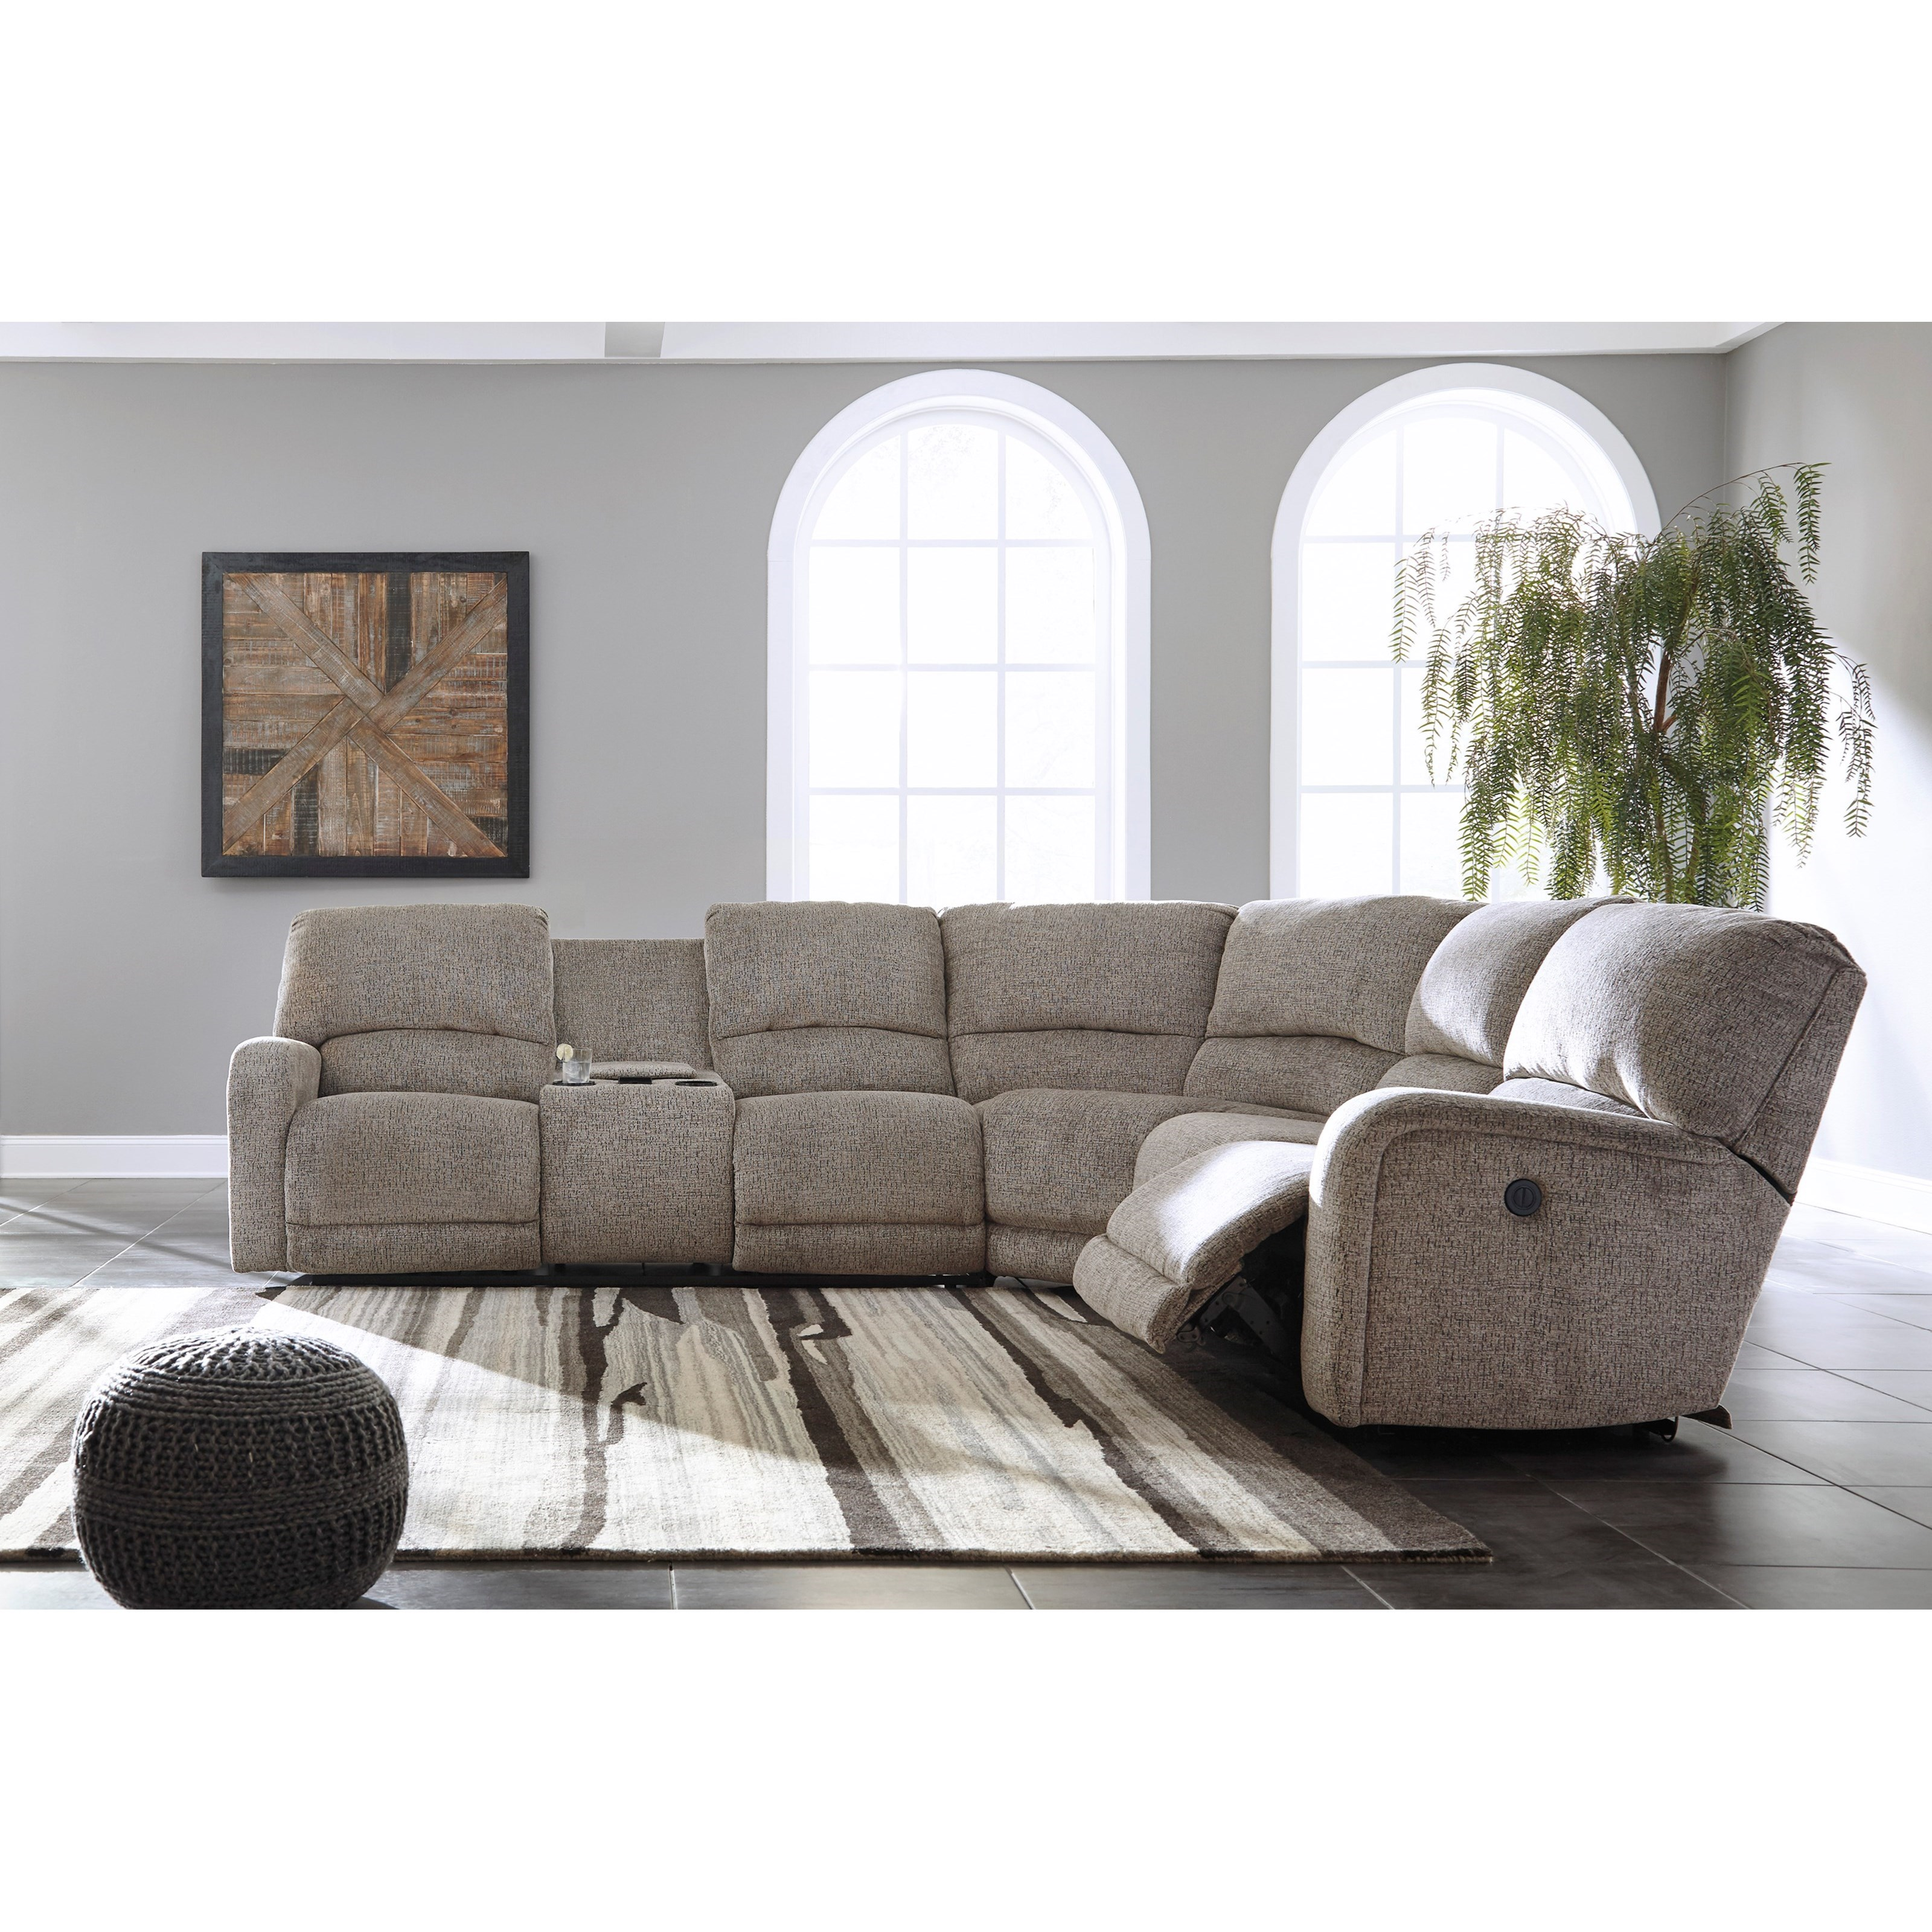 Sectional Sofas With Two Recliners: Signature Design By Ashley Pittsfield Power Reclining